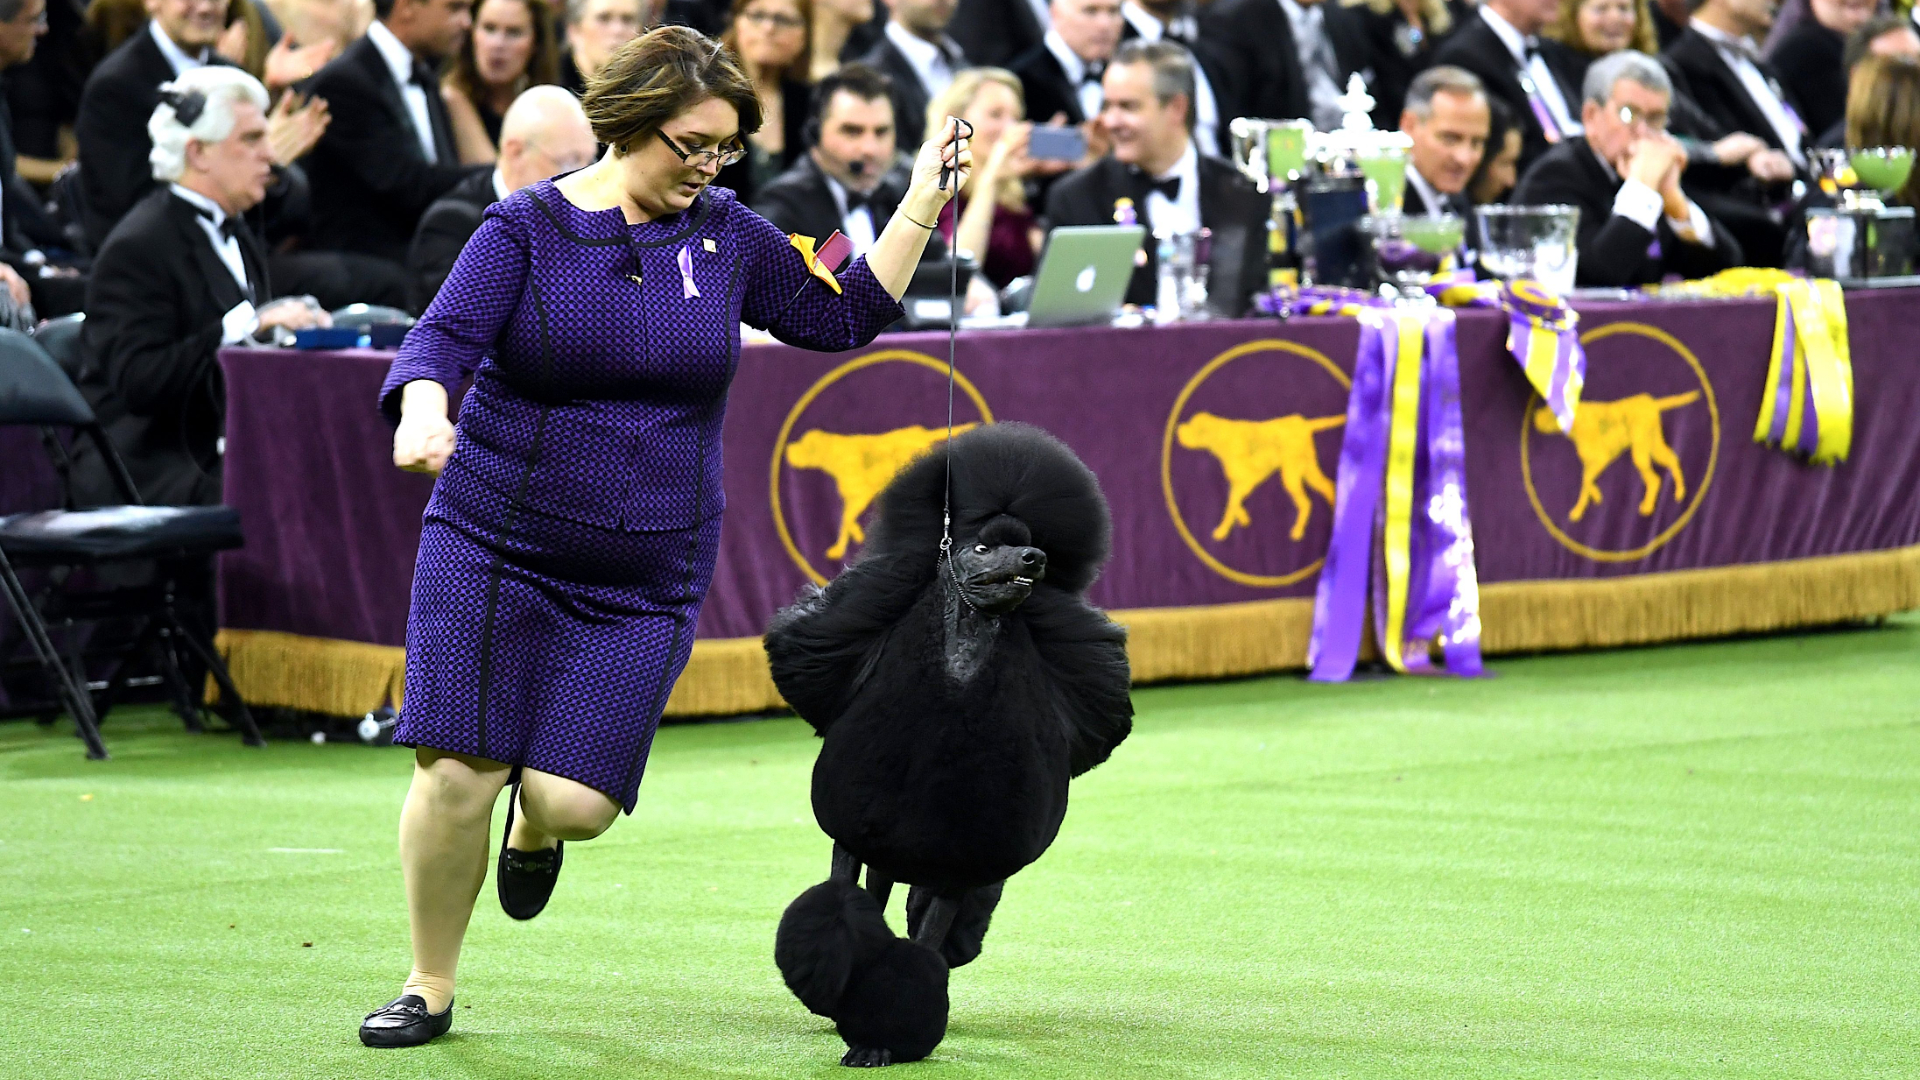 Westminster Dog Show Prize Money: How Much Do Winners Make In 2021?